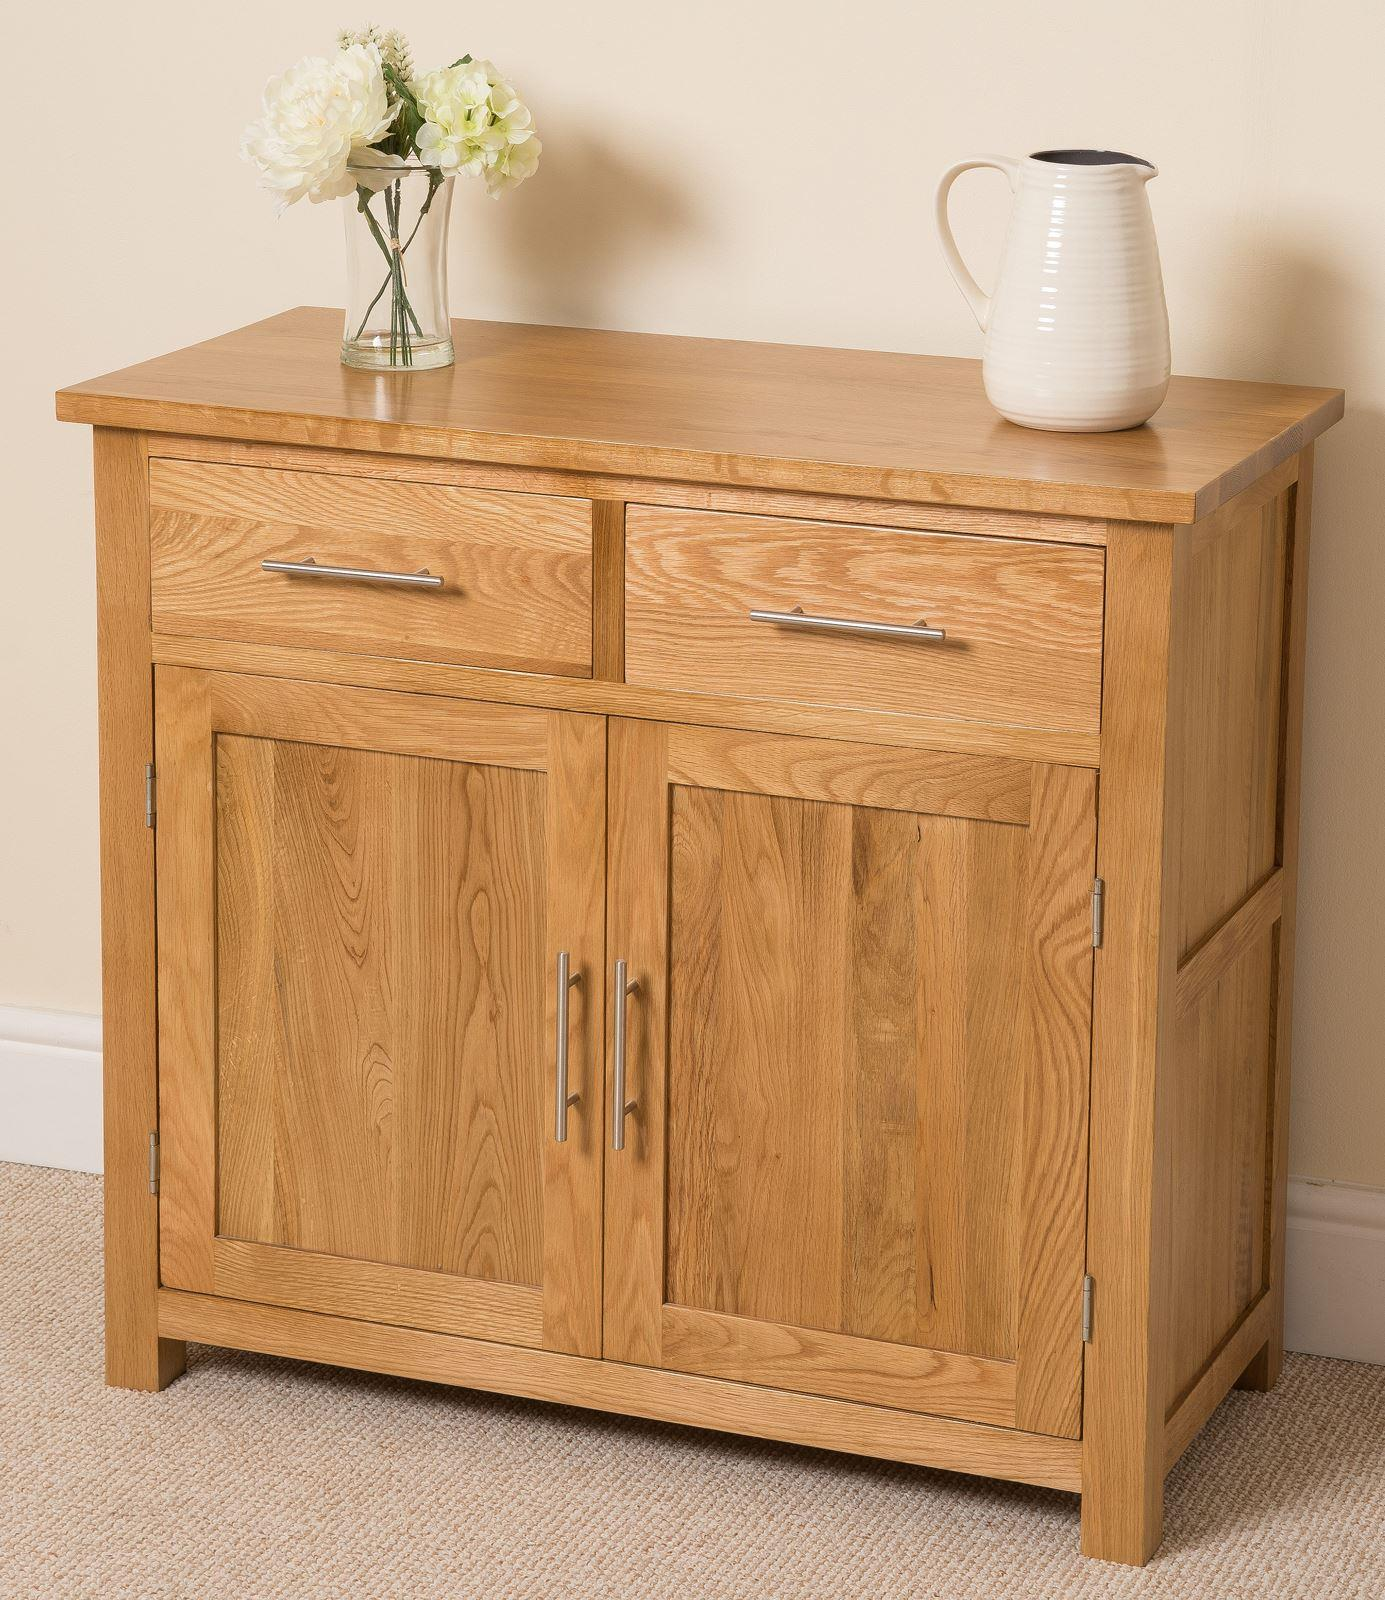 Oslo solid oak small sideboard